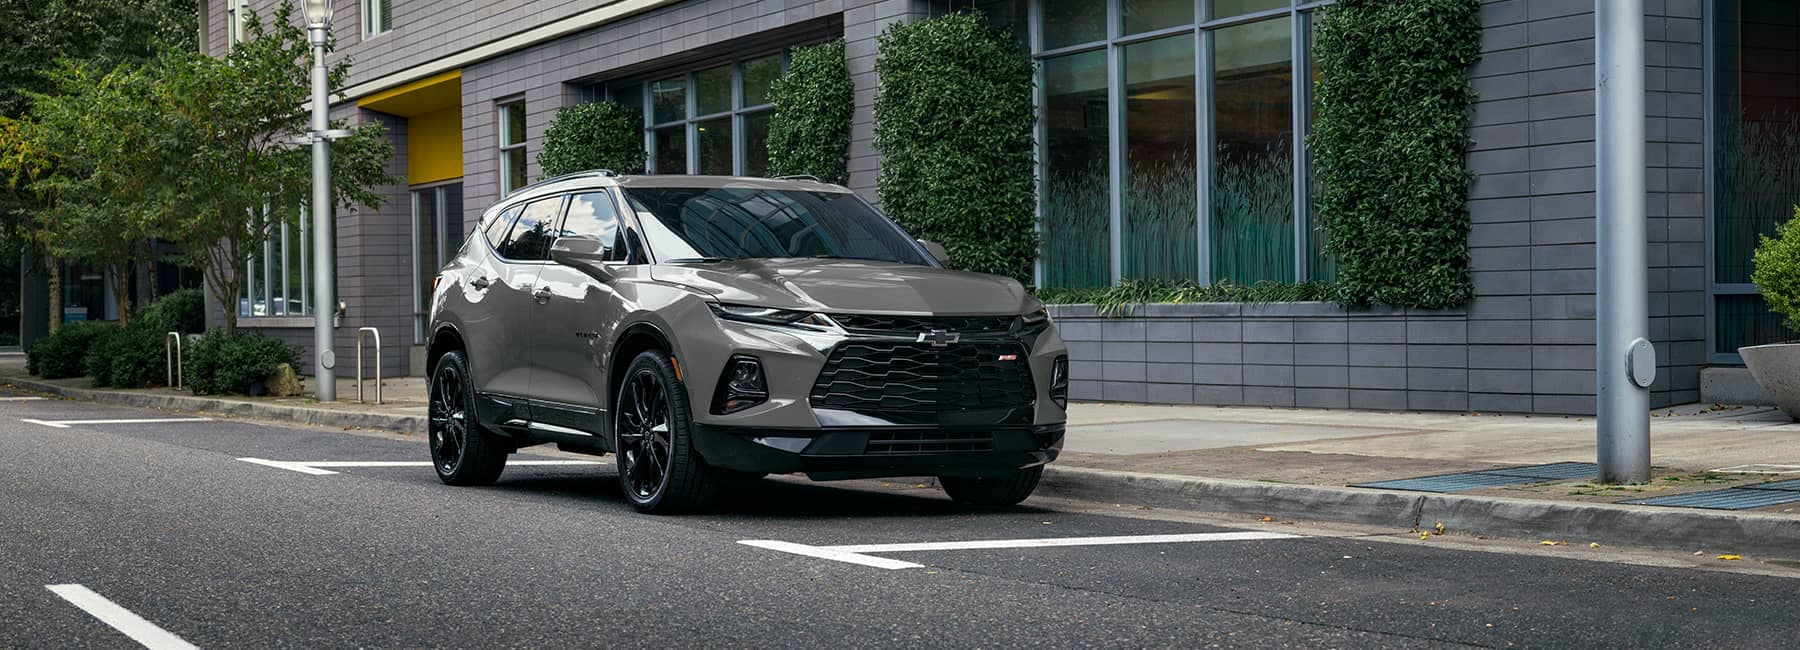 2021 Chevrolet Blazer parked in front of a city building